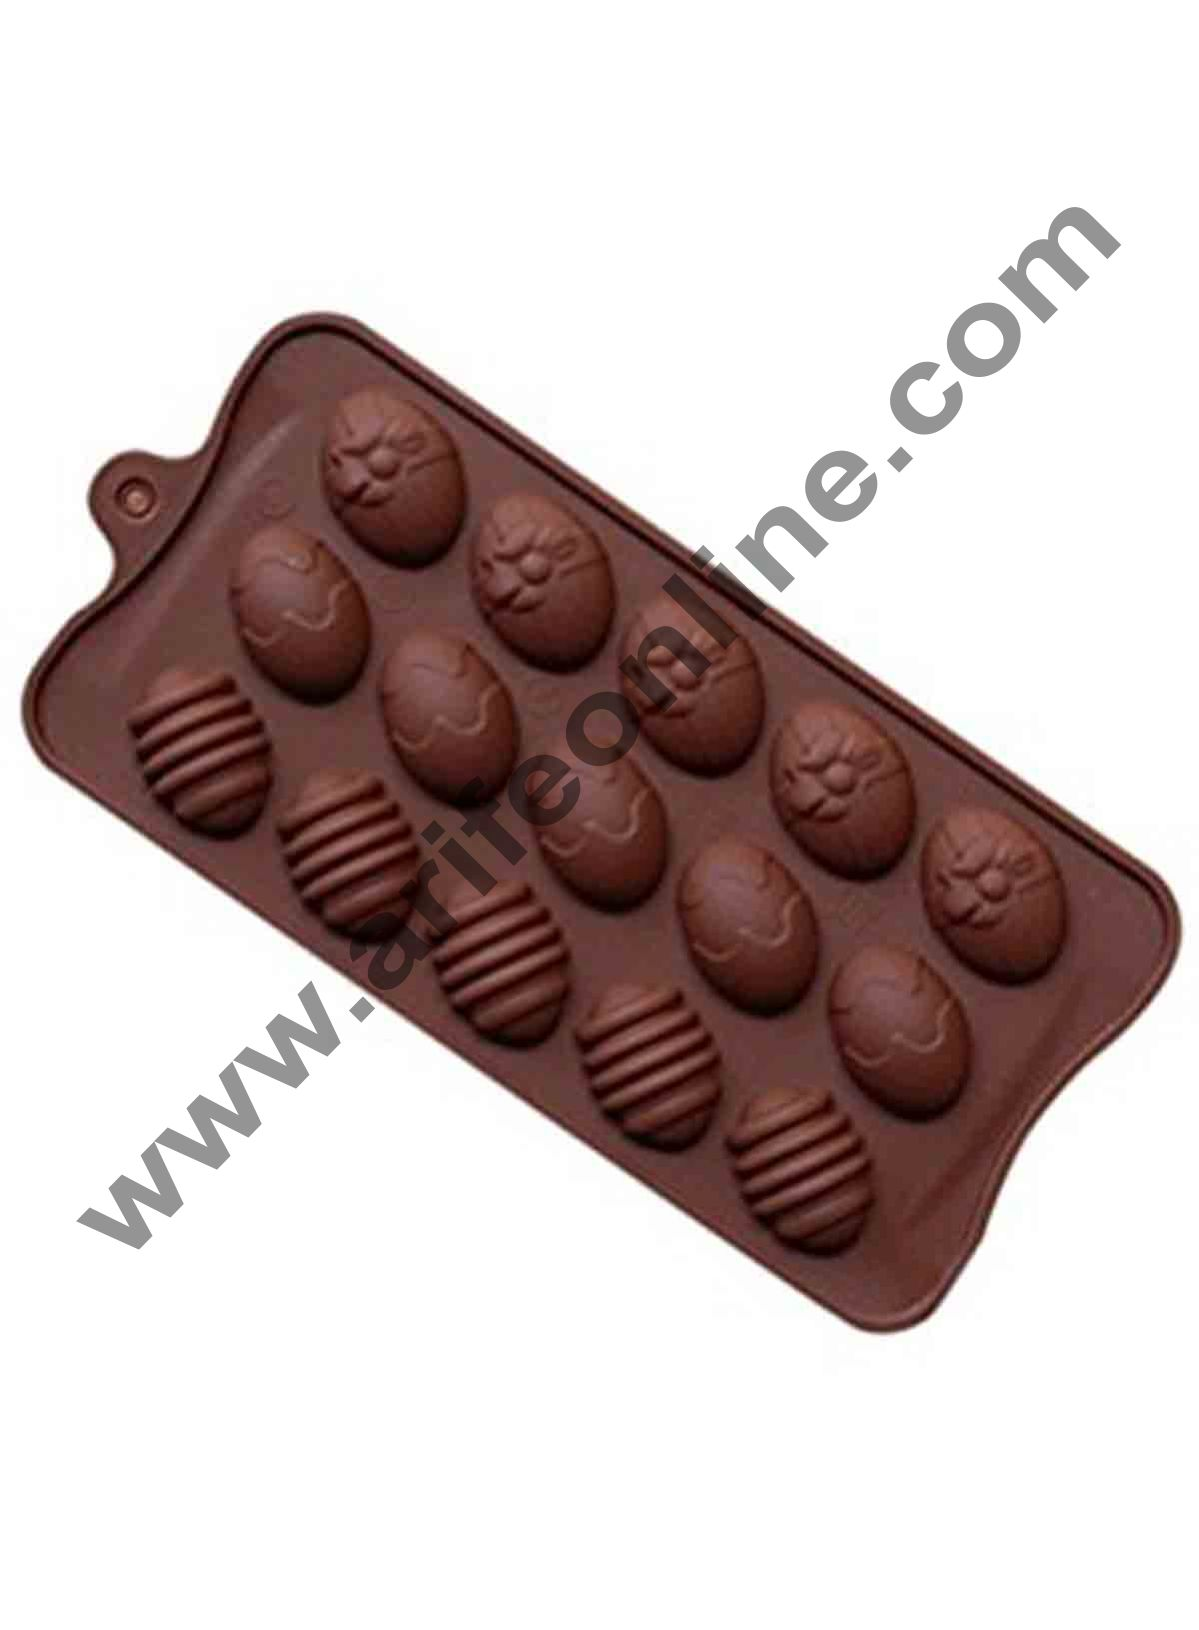 Silicone Alphabet Star Cake Chocolate Mold Ice Cube Soap Jelly Baking Mould Tray